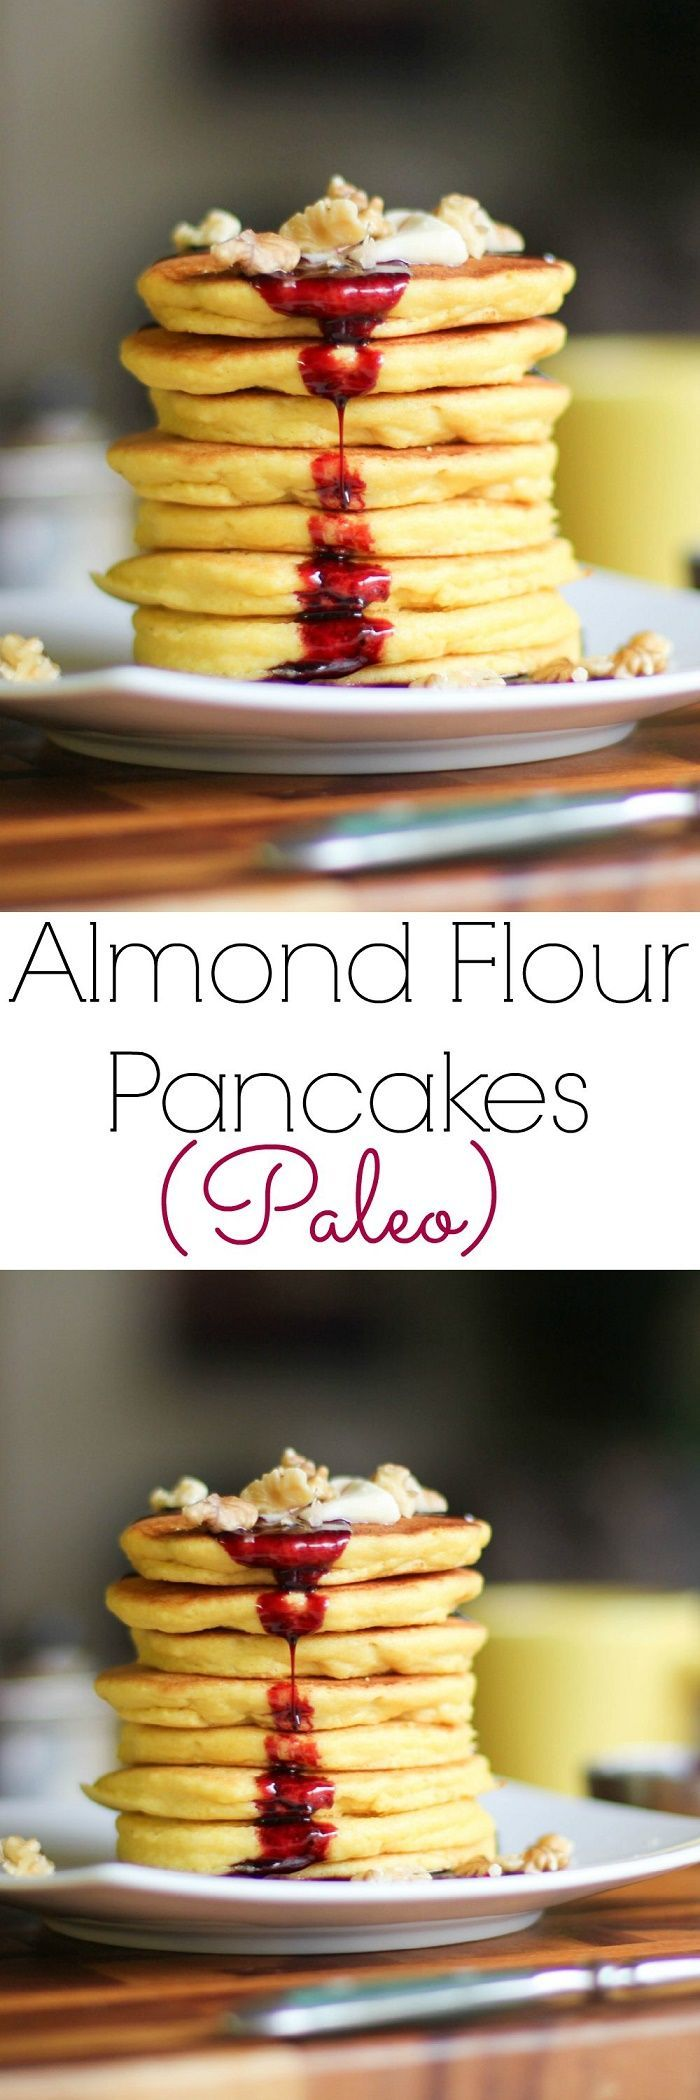 Almond Flour Pancakes | gluten-free, grain-free, and paleo! | http://TheRoastedRoot.net #healthy #breakfast #recipe